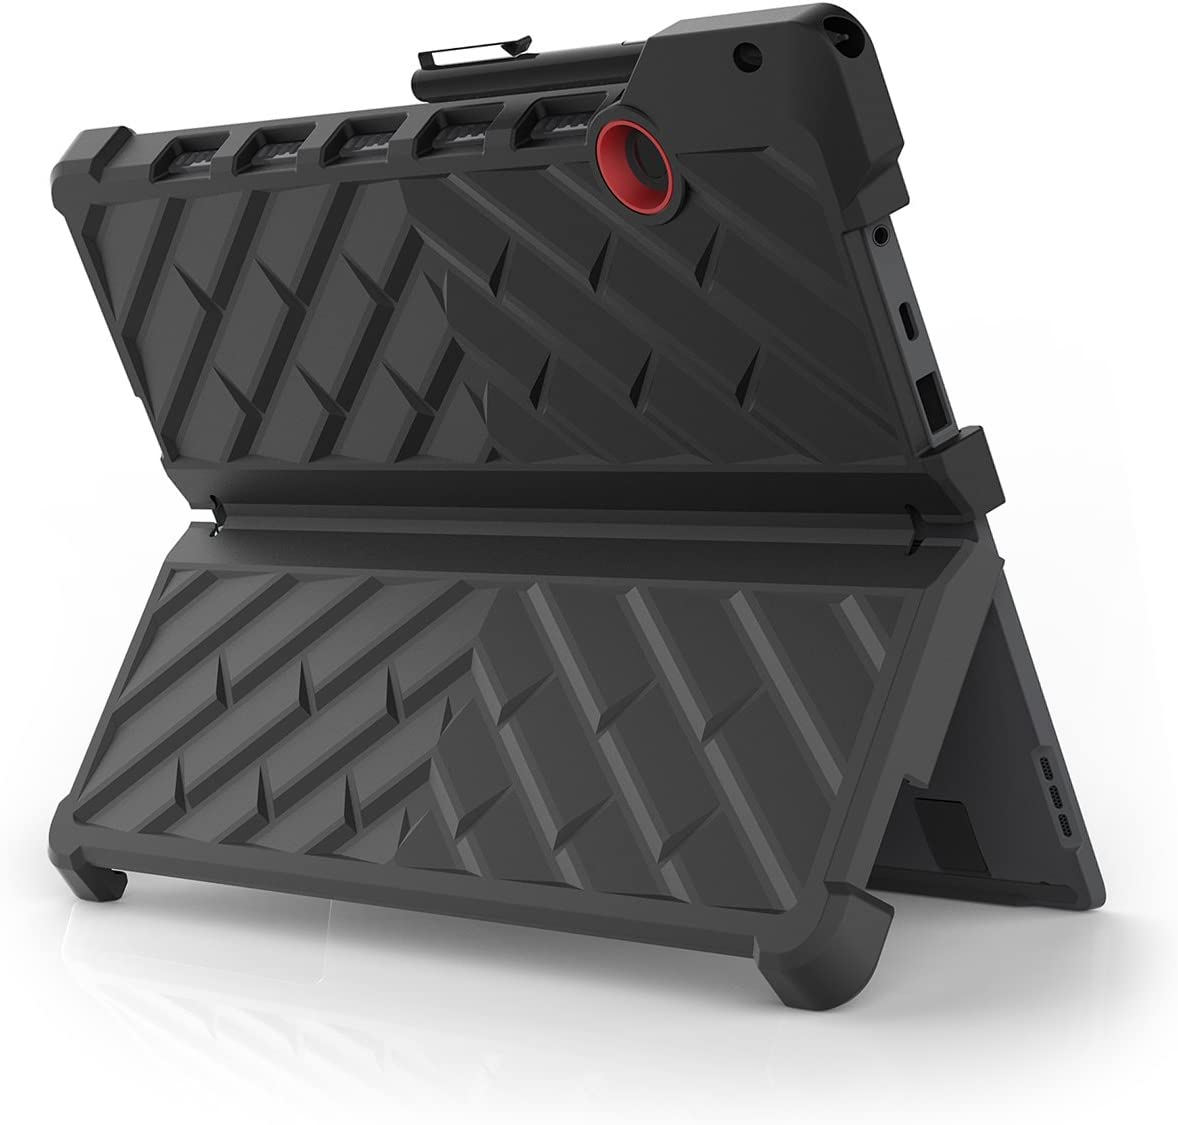 Gumdrop DropTech Case Designed for Lenovo Miix 720 2-in-1 Tablet for Commercial, Business and Office Essentials - Black/Red, Rugged, Shock Absorbing, Extreme Drop Protection